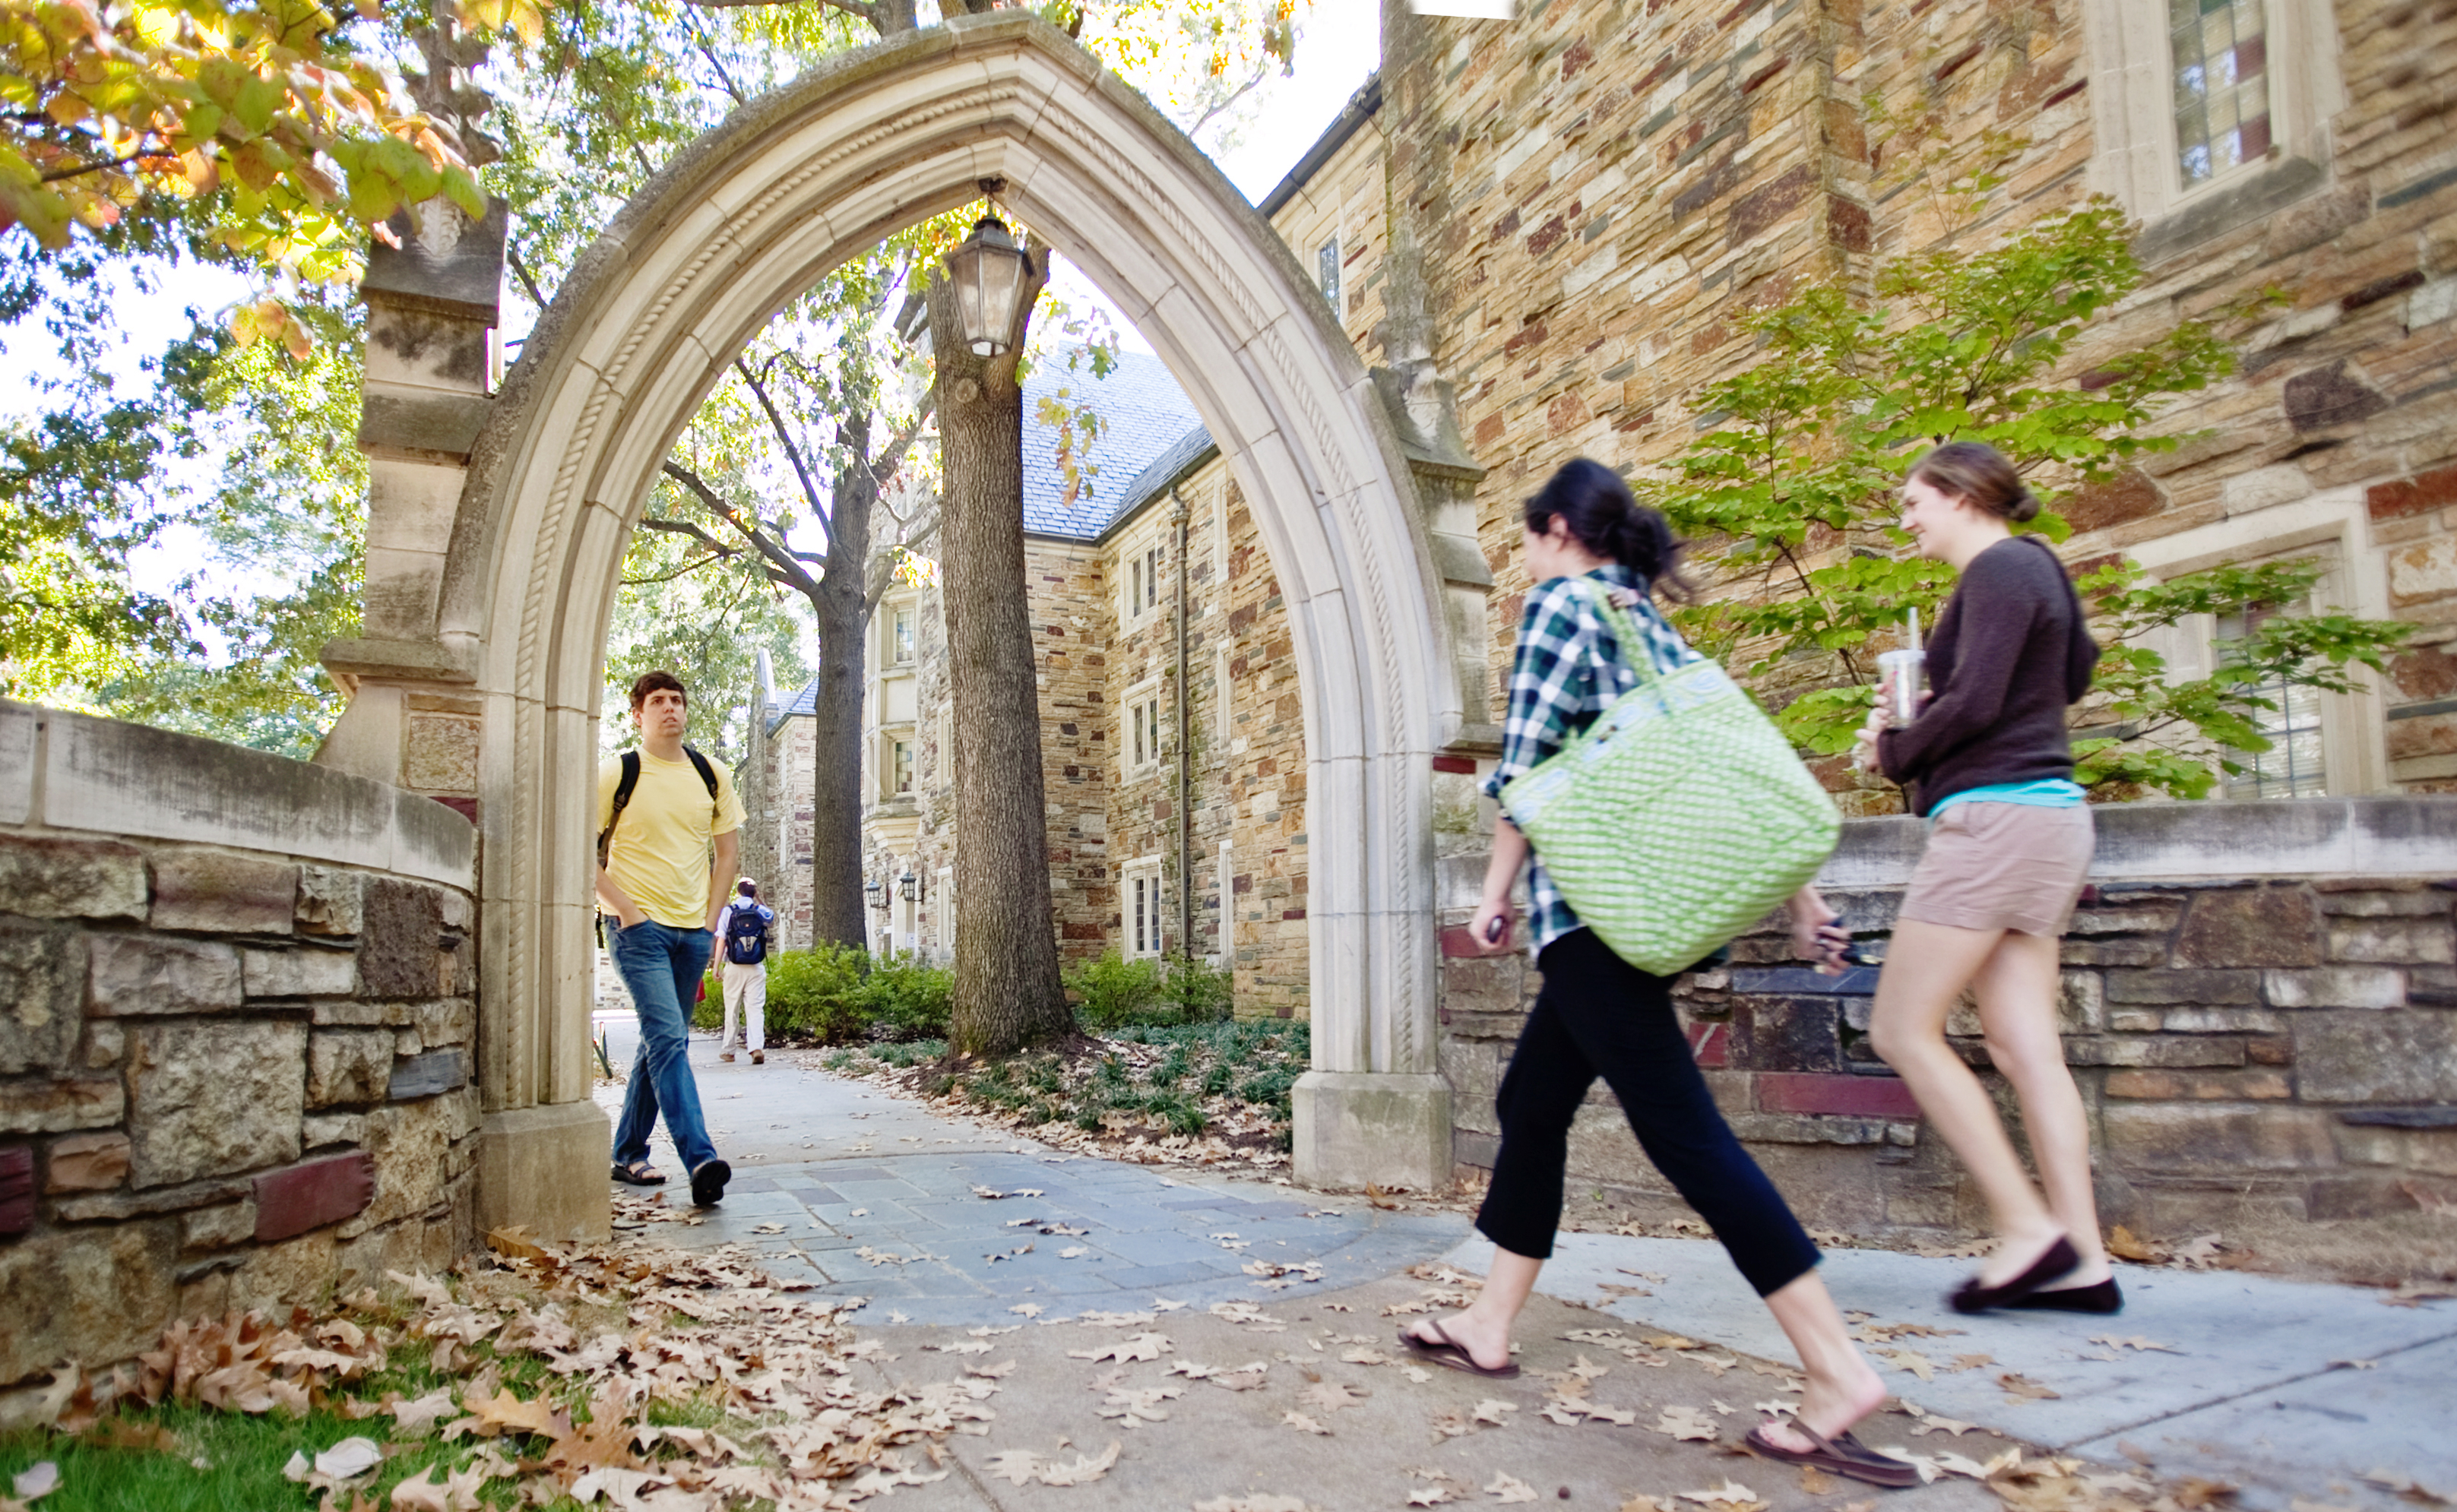 Students walking under an arch.